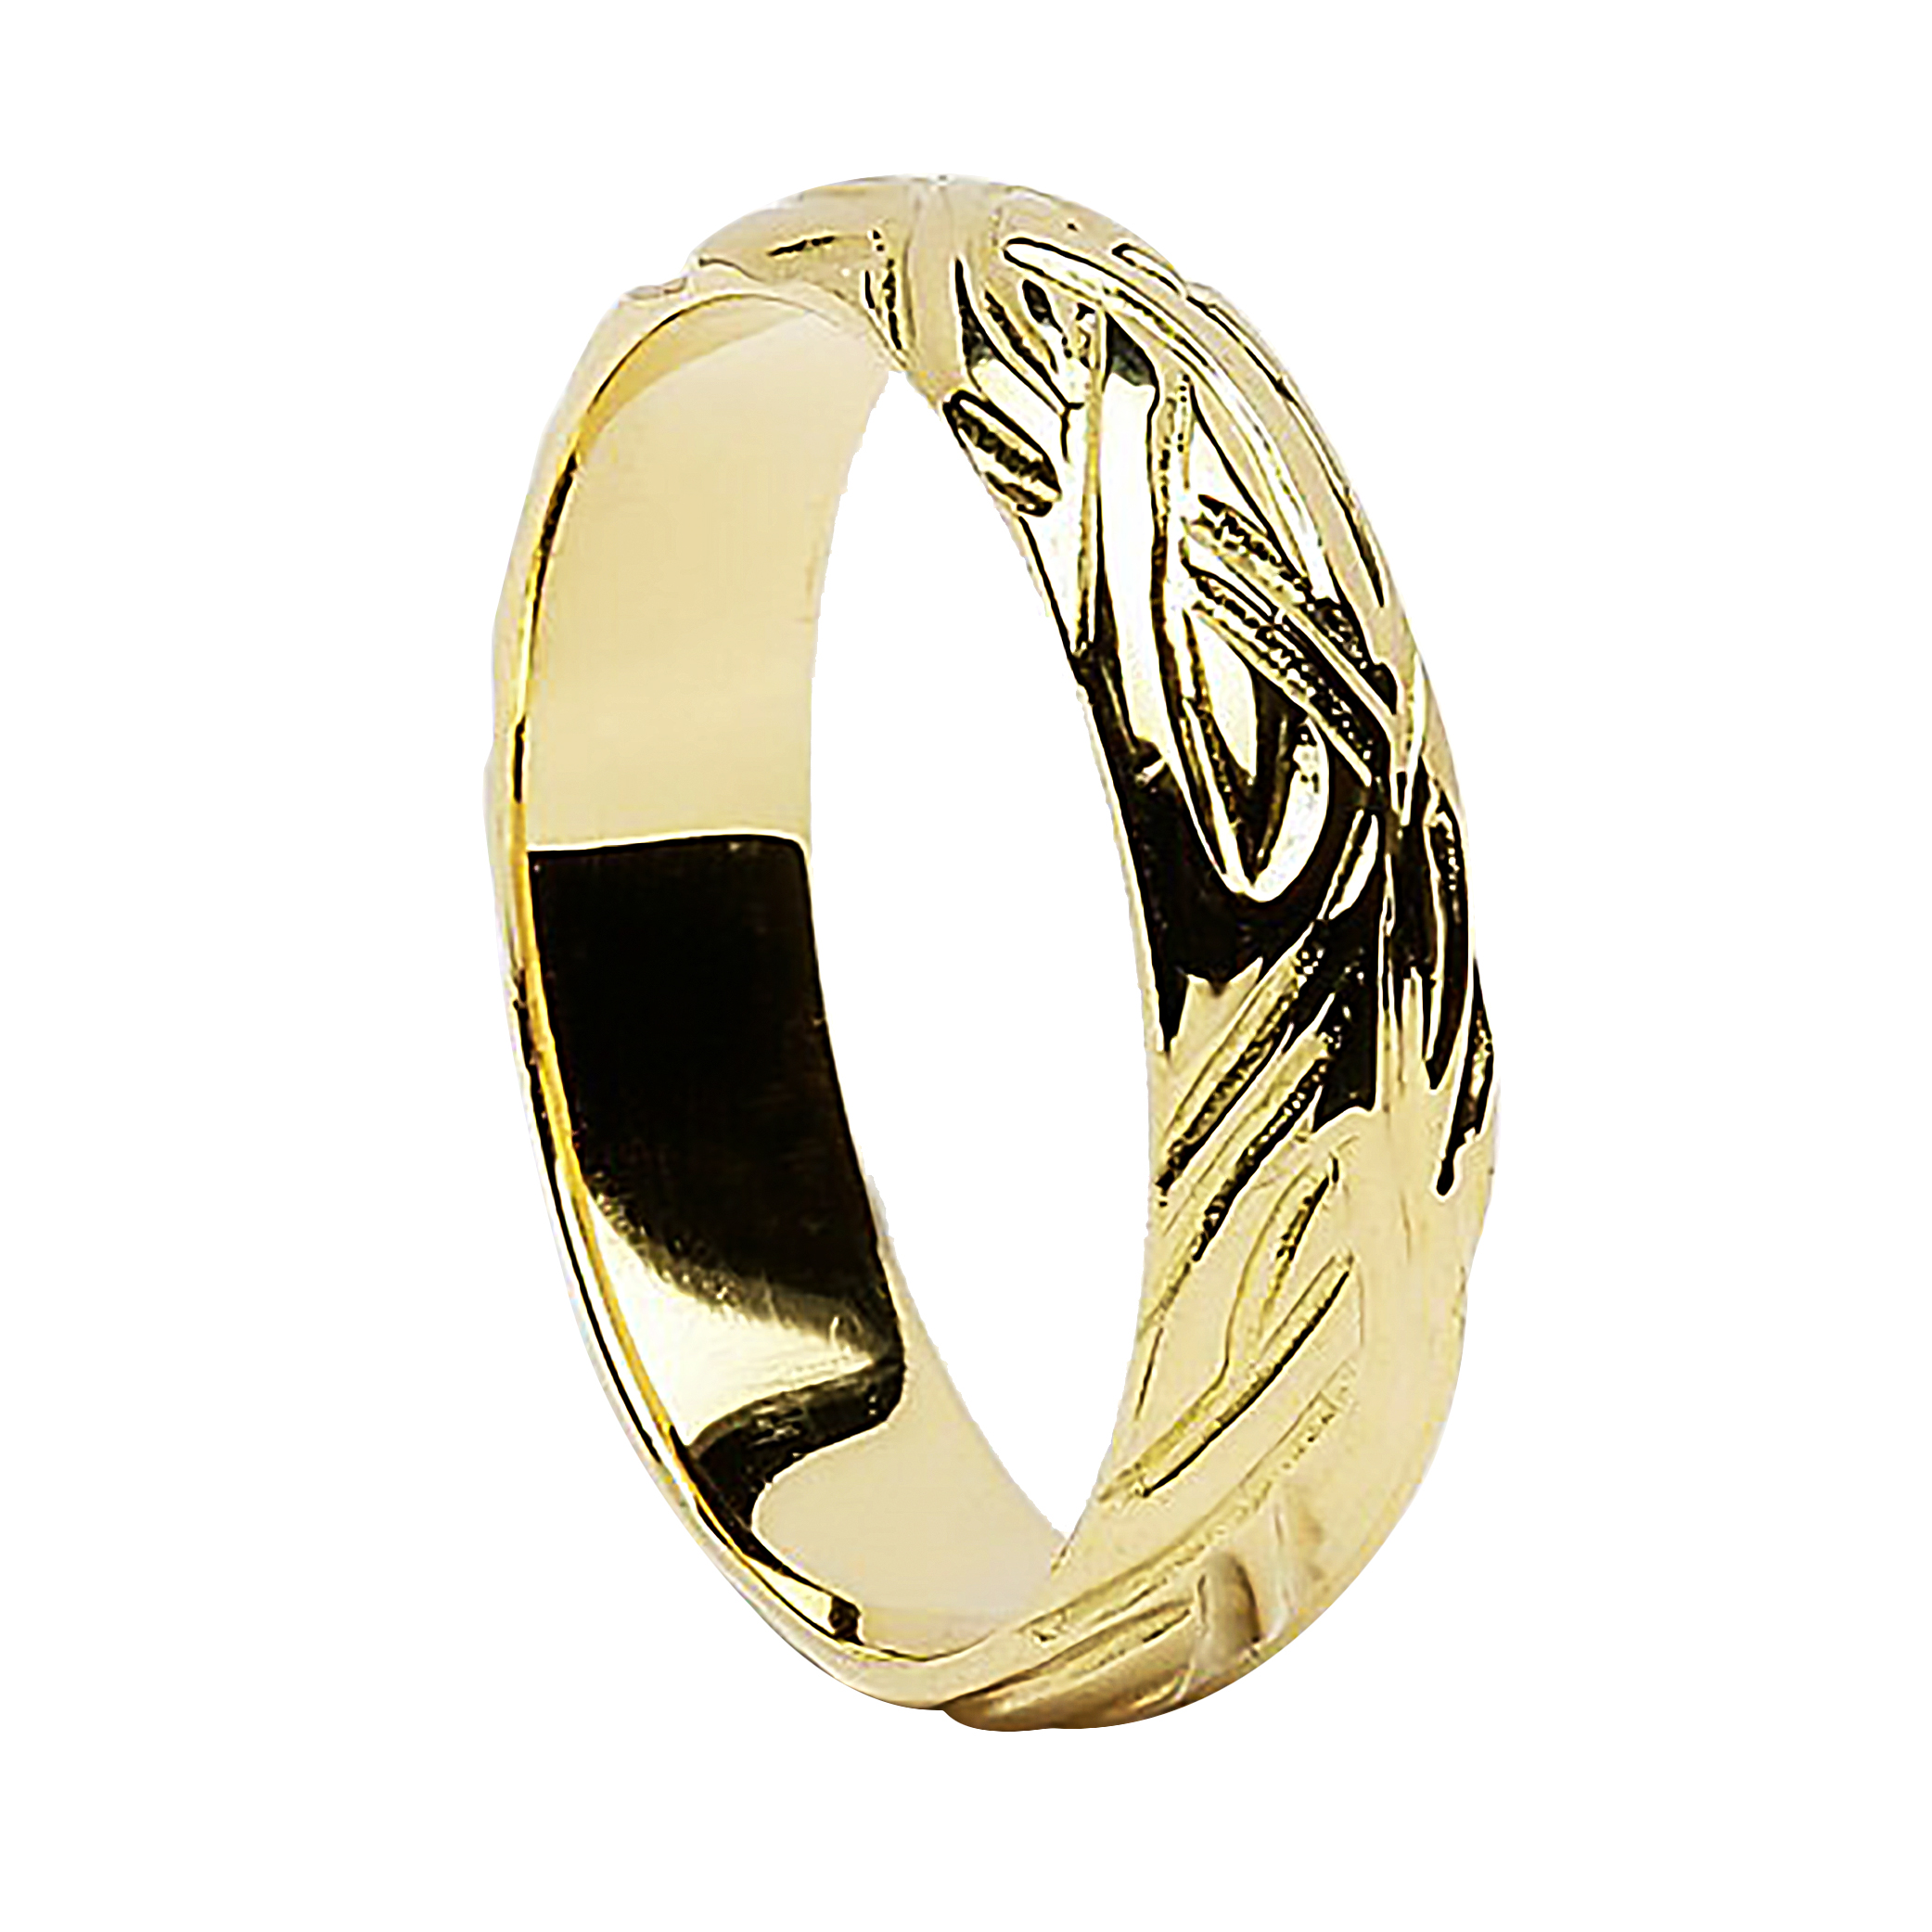 w keith lochy gold mens jewelery irish rings wedding jack